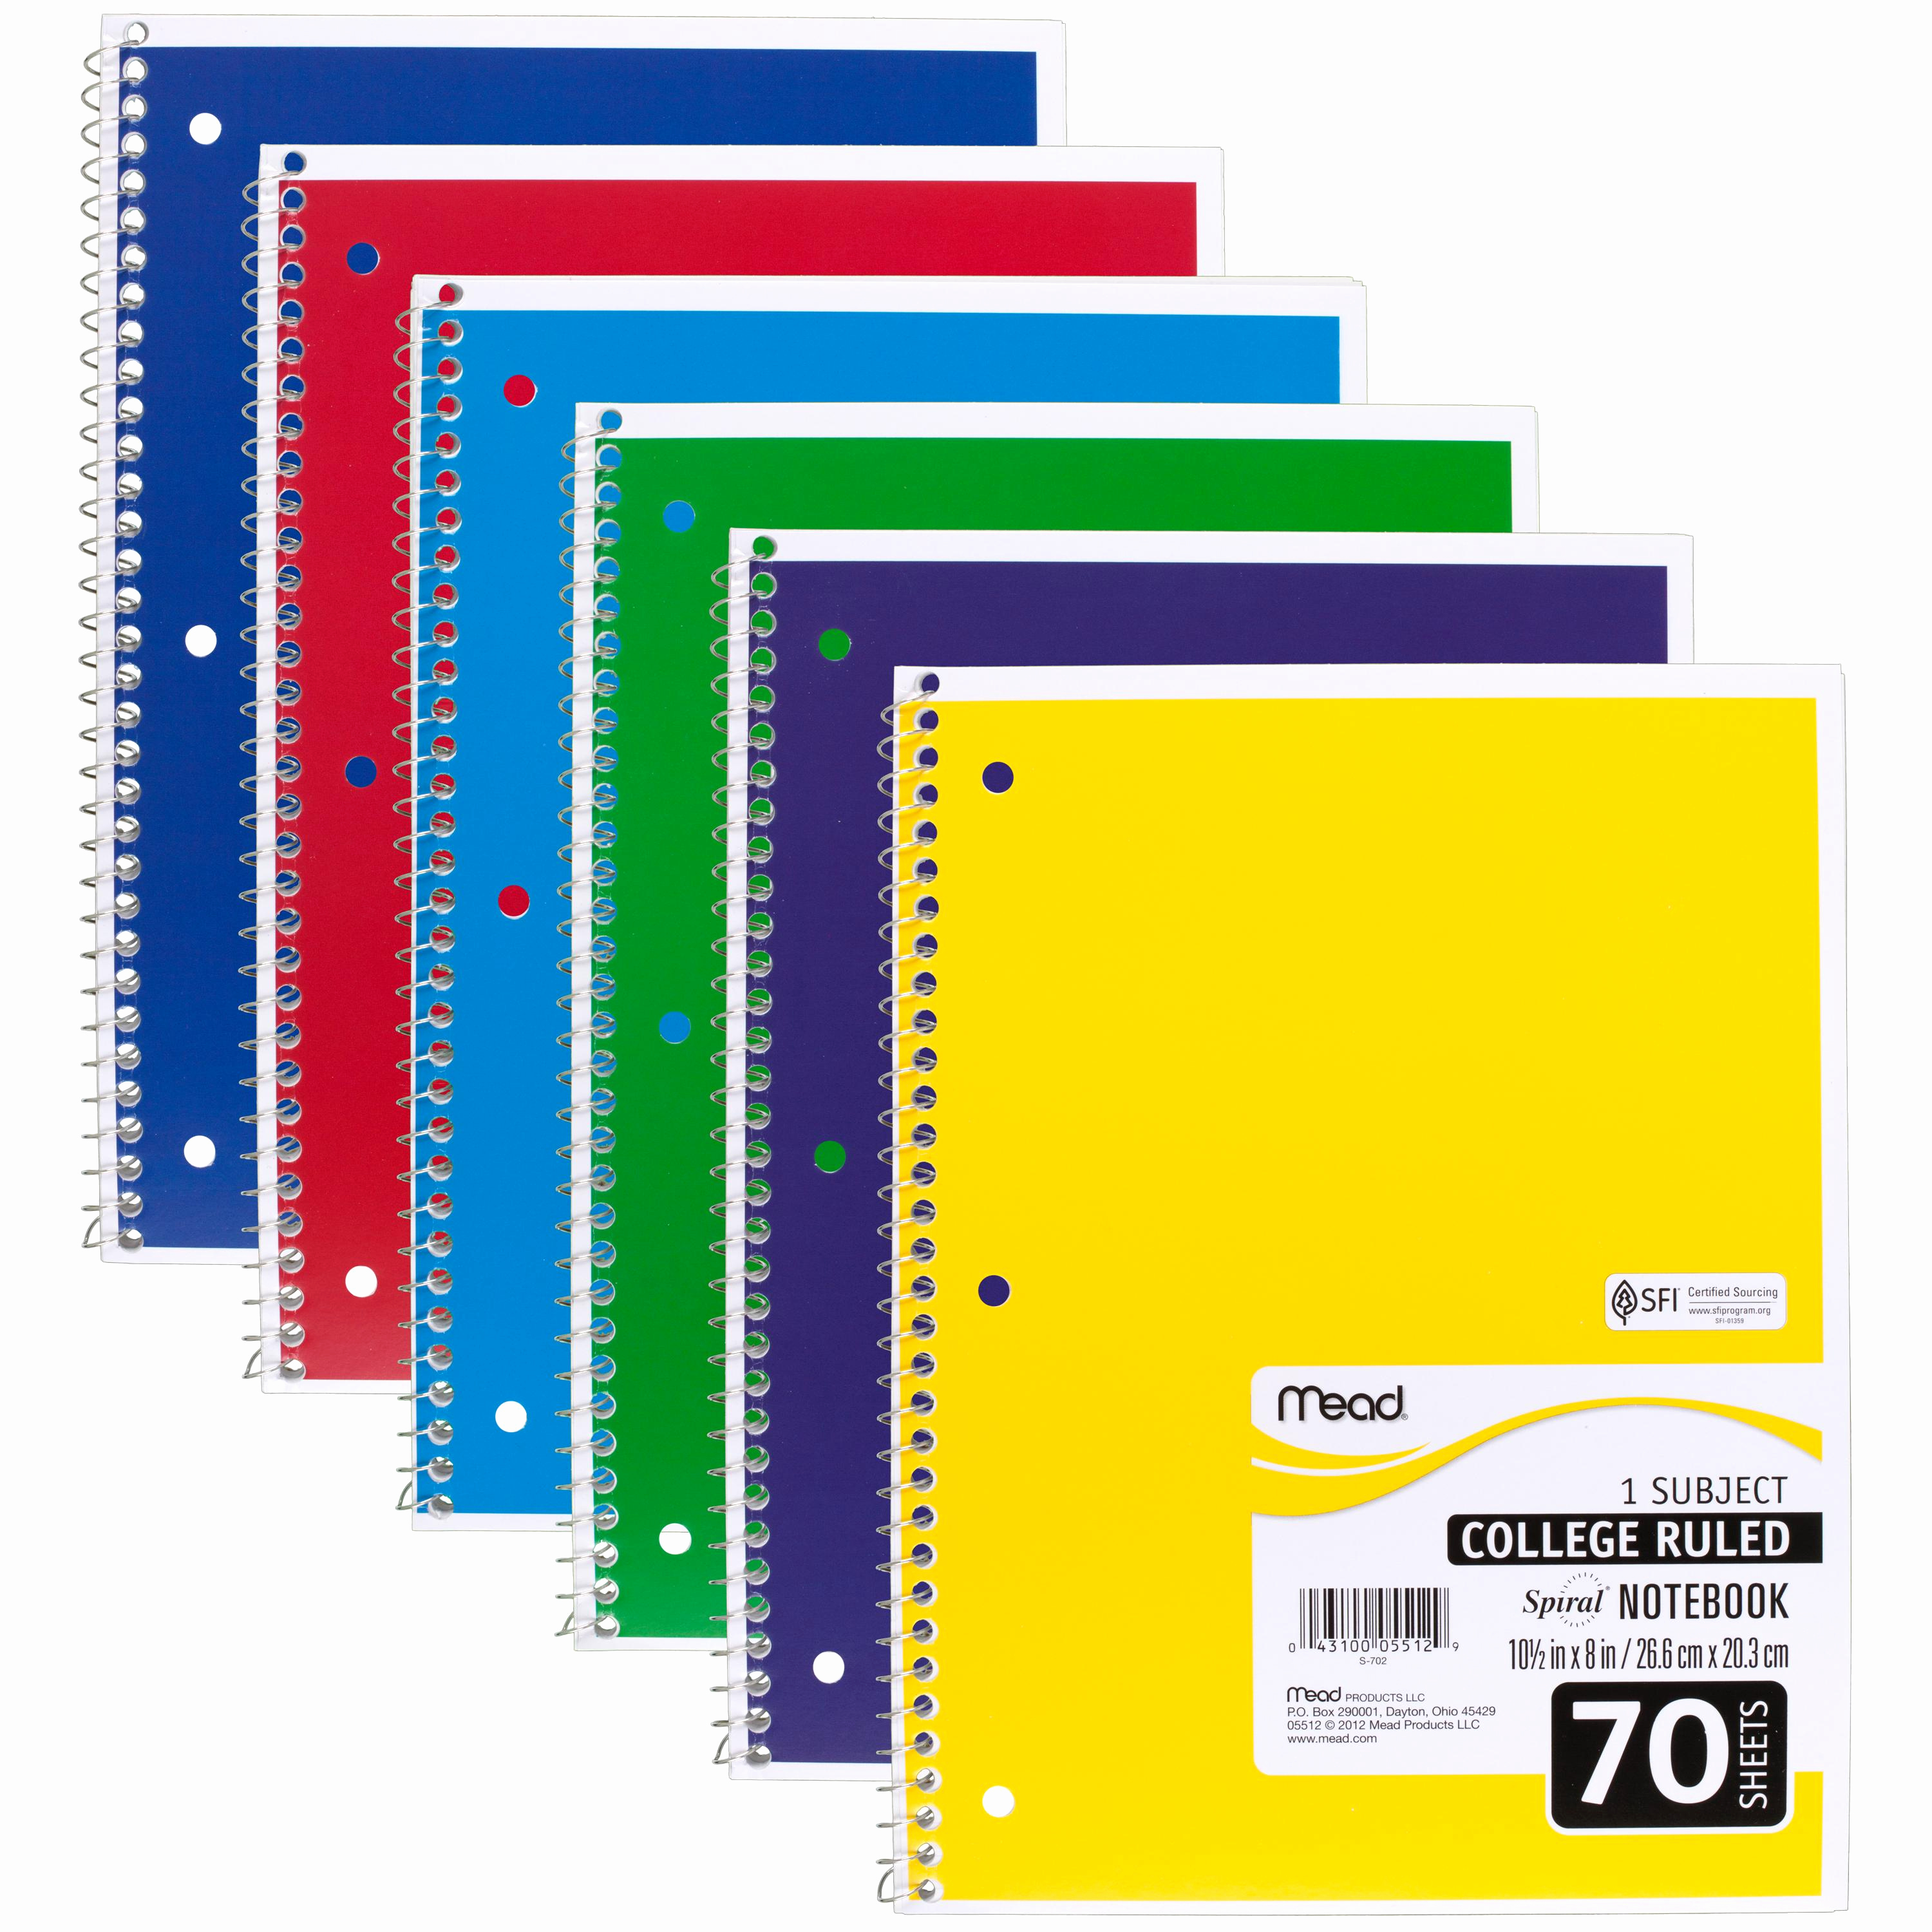 College Ruled Notebook Paper Fresh Amazon Mead Spiral Notebook College Ruled 1 Subject